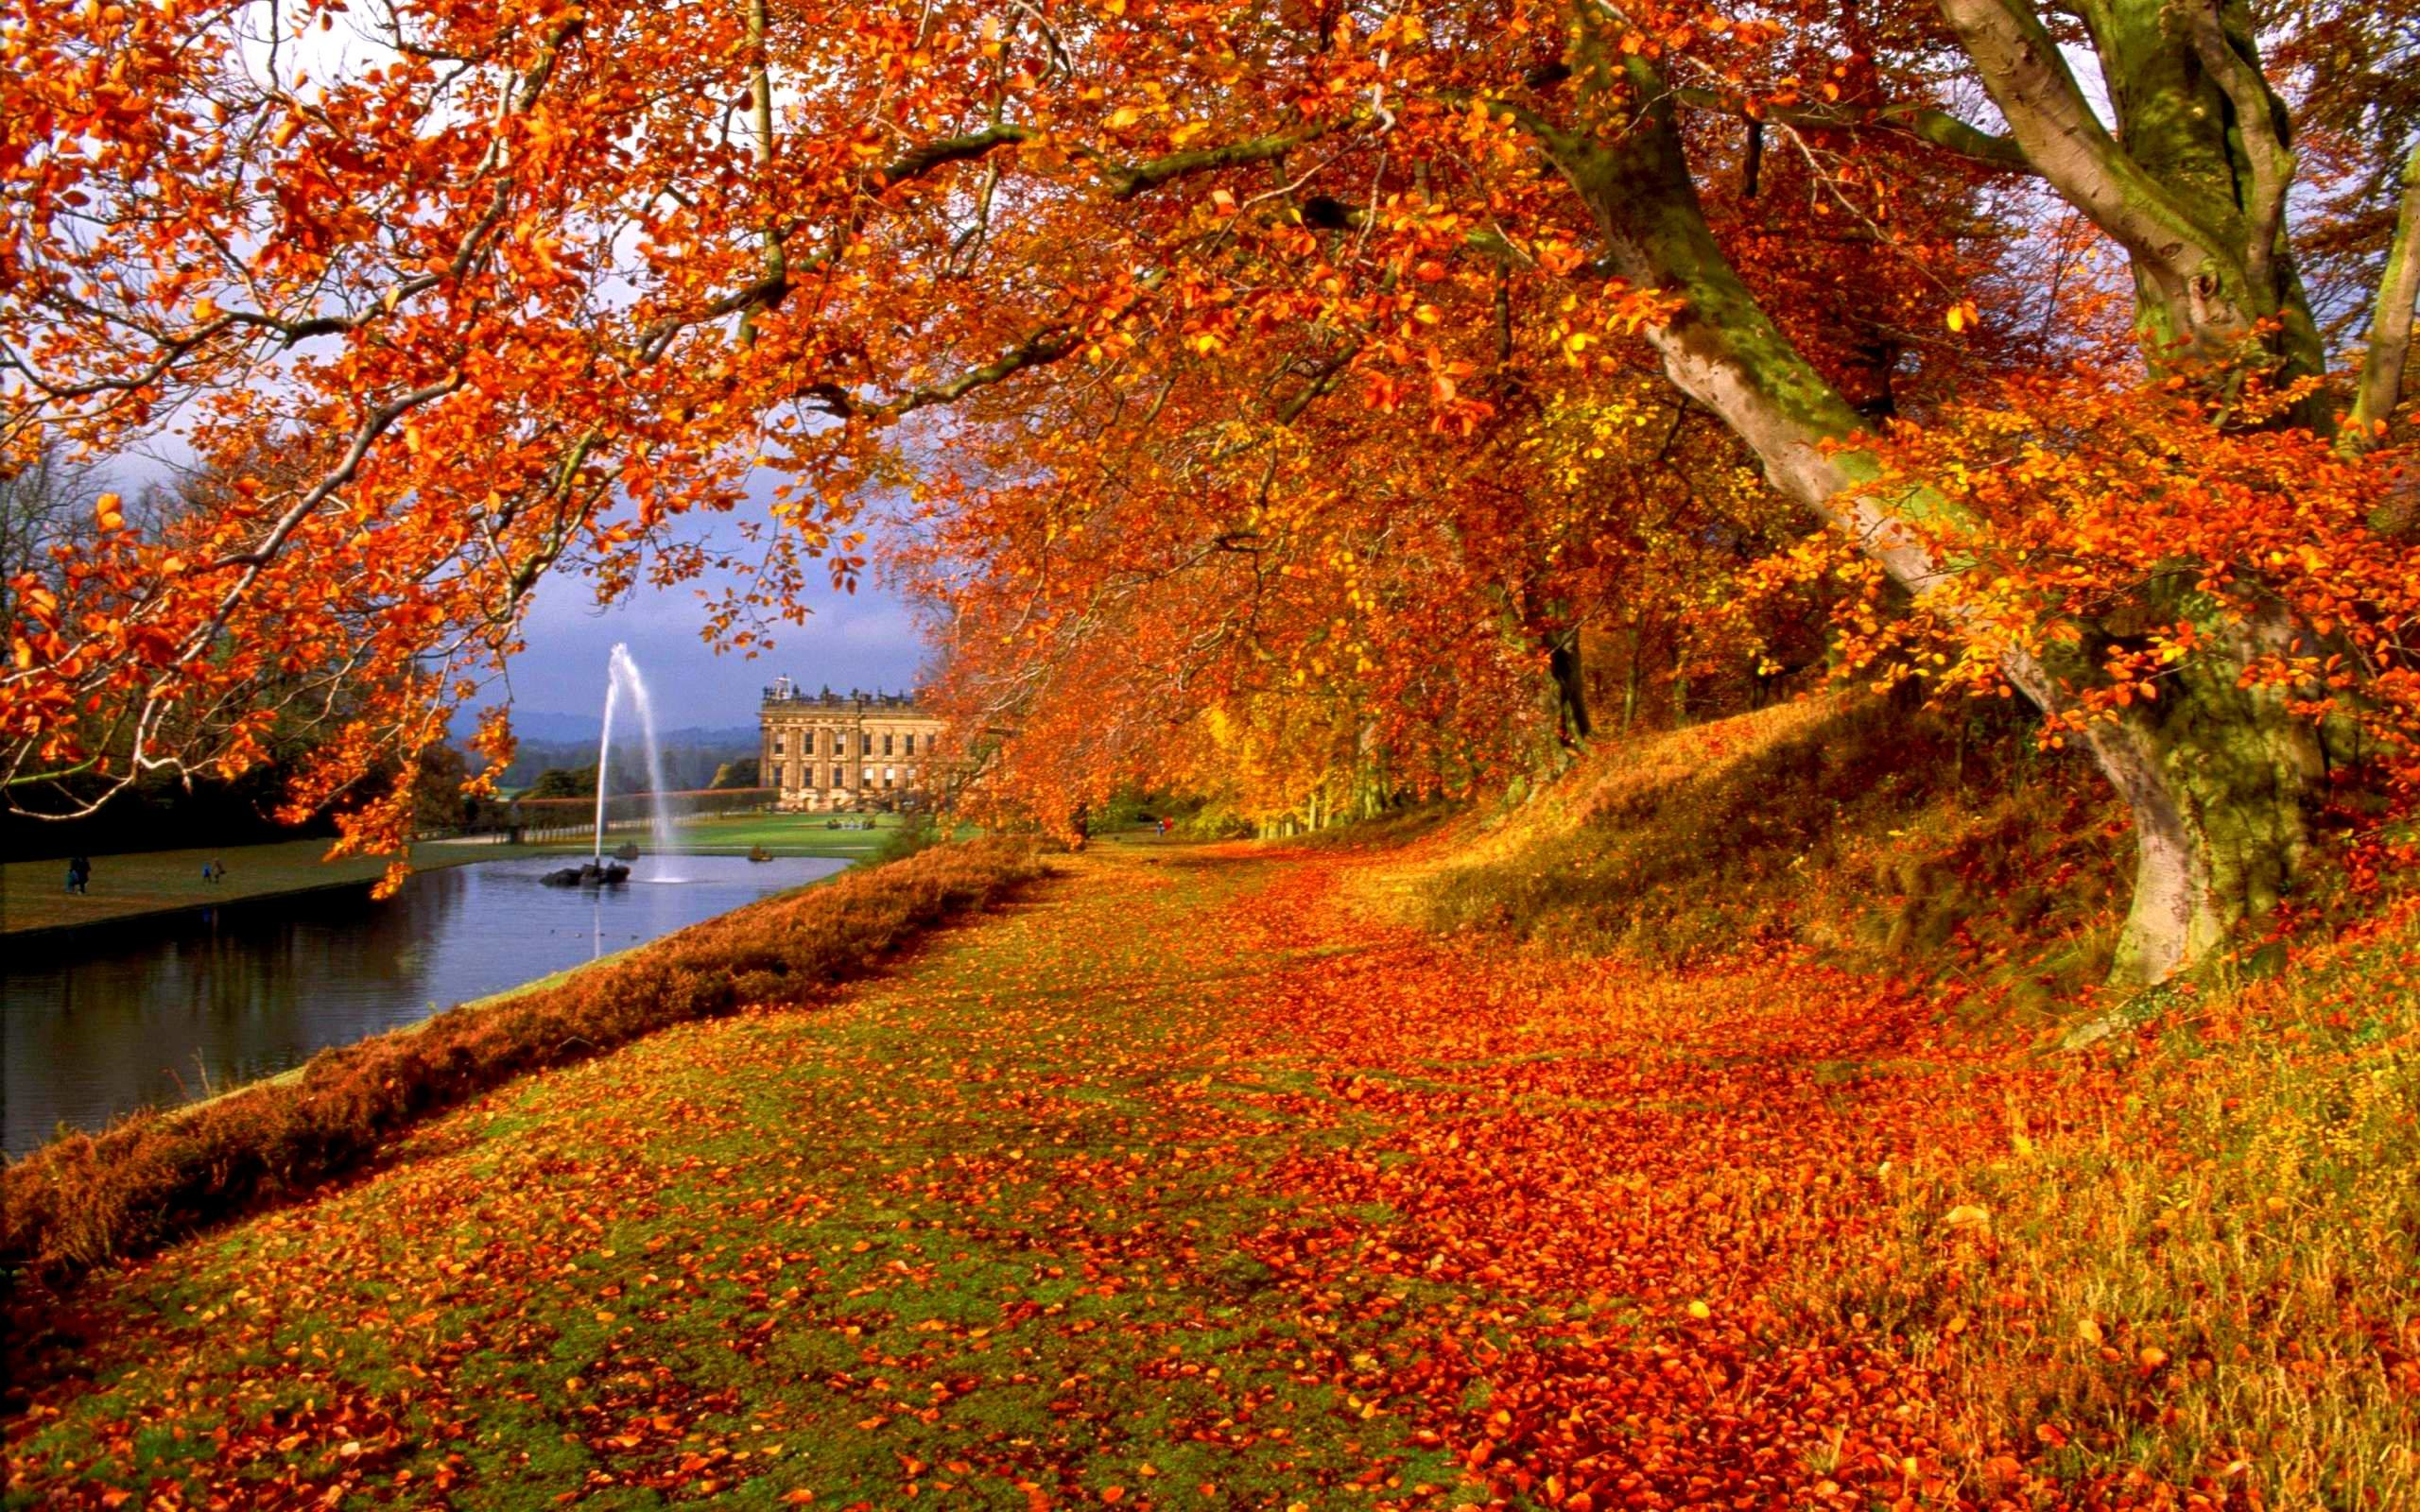 Fall Themed Wallpaper Iphone Fall Pictures Desktop Wallpaper 67 Images